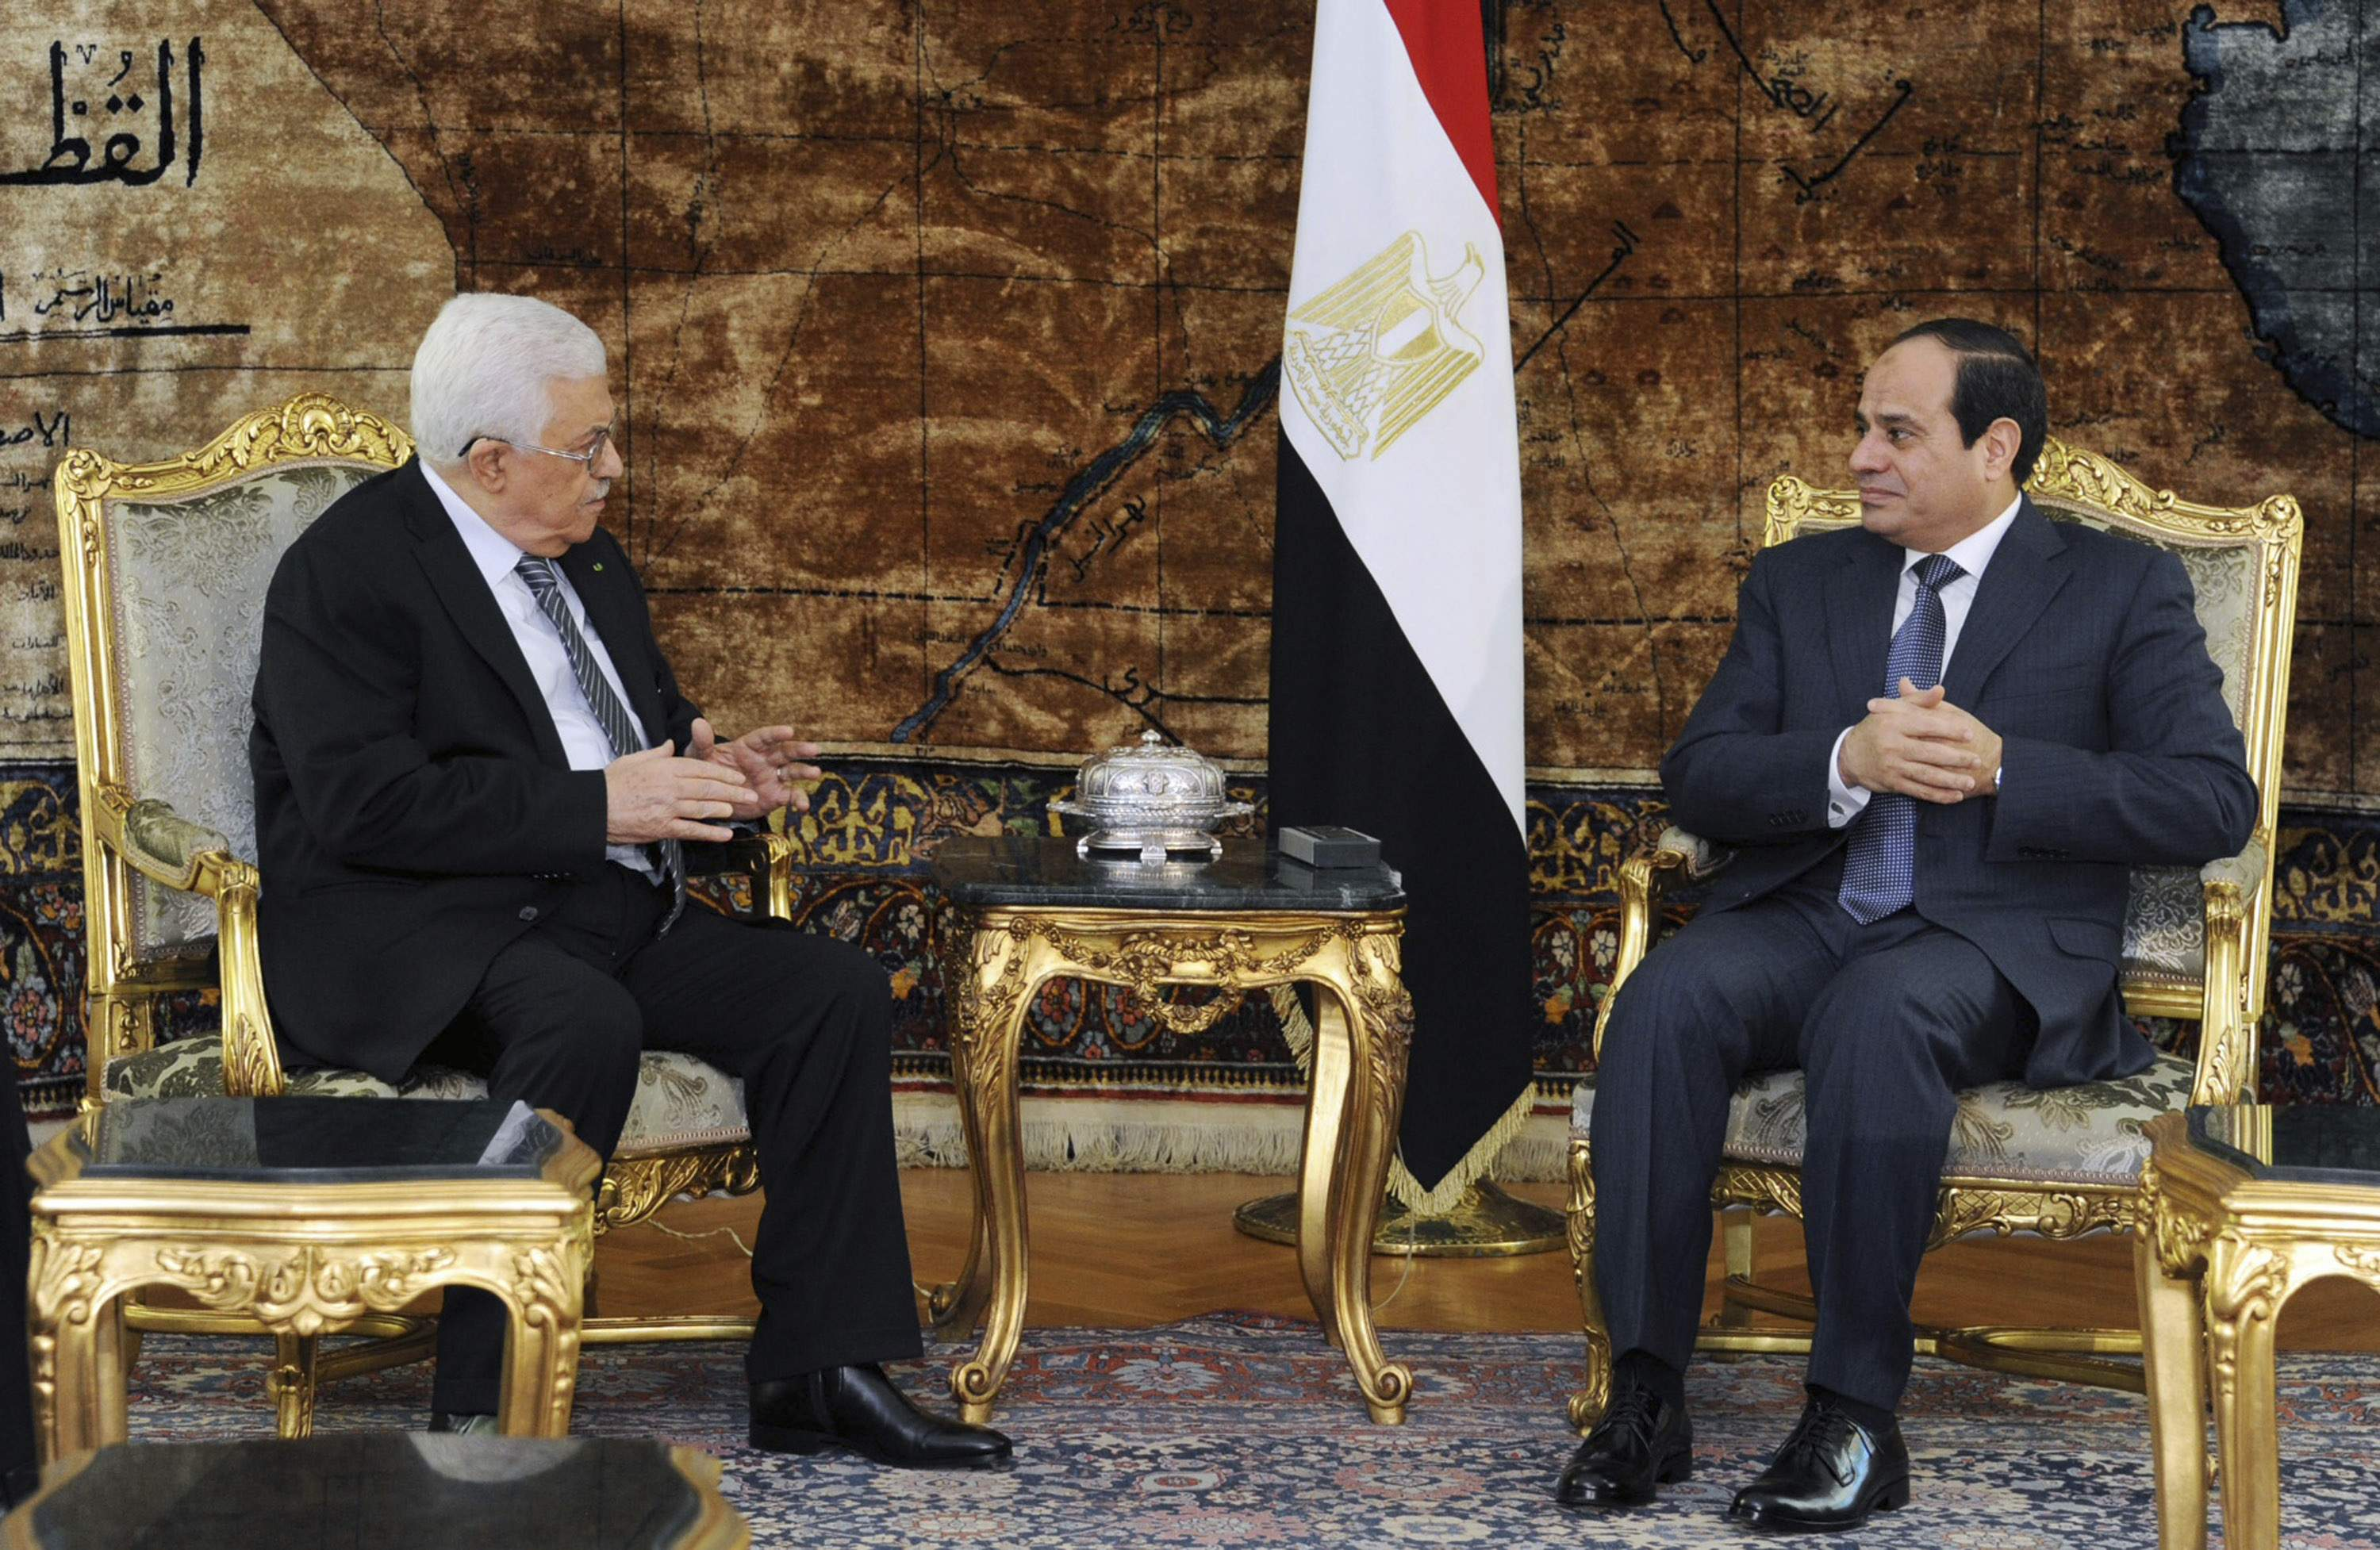 Egyptian President Abdel Fattah al-Sisi (R) meets with Palestinian President Mahmoud Abbas in Cairo, in this January 14, 2015 handout provided by the Egyptian Presidency. REUTERS/The Egyptian Presidency/Handout via Reuters (EGYPT - Tags: POLITICS) ATTENTION EDITORS - NO SALES. NO ARCHIVES. FOR EDITORIAL USE ONLY. NOT FOR SALE FOR MARKETING OR ADVERTISING CAMPAIGNS. THIS IMAGE HAS BEEN SUPPLIED BY A THIRD PARTY. IT IS DISTRIBUTED, EXACTLY AS RECEIVED BY REUTERS, AS A SERVICE TO CLIENTS. REUTERS IS UNABLE TO INDEPENDENTLY VERIFY THE AUTHENTICITY, CONTENT, LOCATION OR DATE OF THIS IMAGE